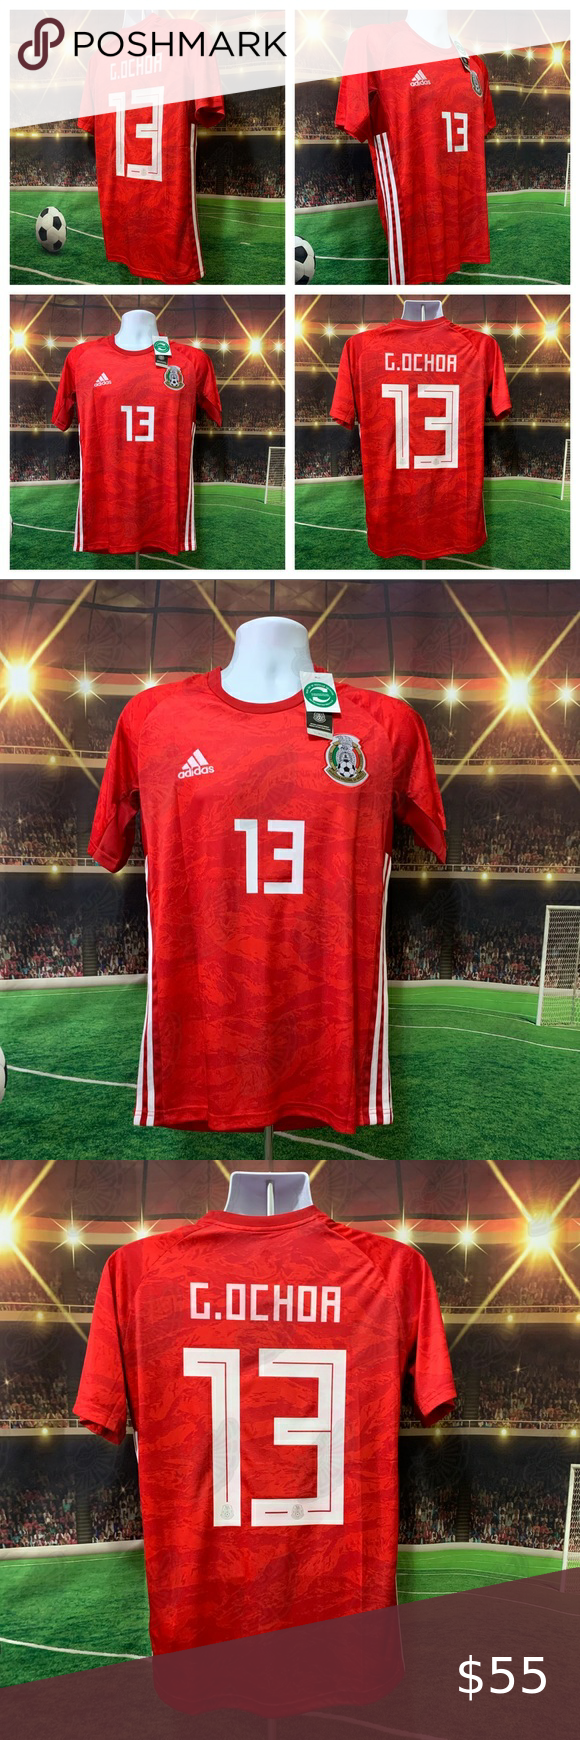 Guillermo Ochoa 13 Mexico Gk 2020 Soccer Jersey Mexico National Football Team Goalie Gk Portero Goalkeeper Jersey K In 2020 Soccer Jersey Mexico National Team Jersey